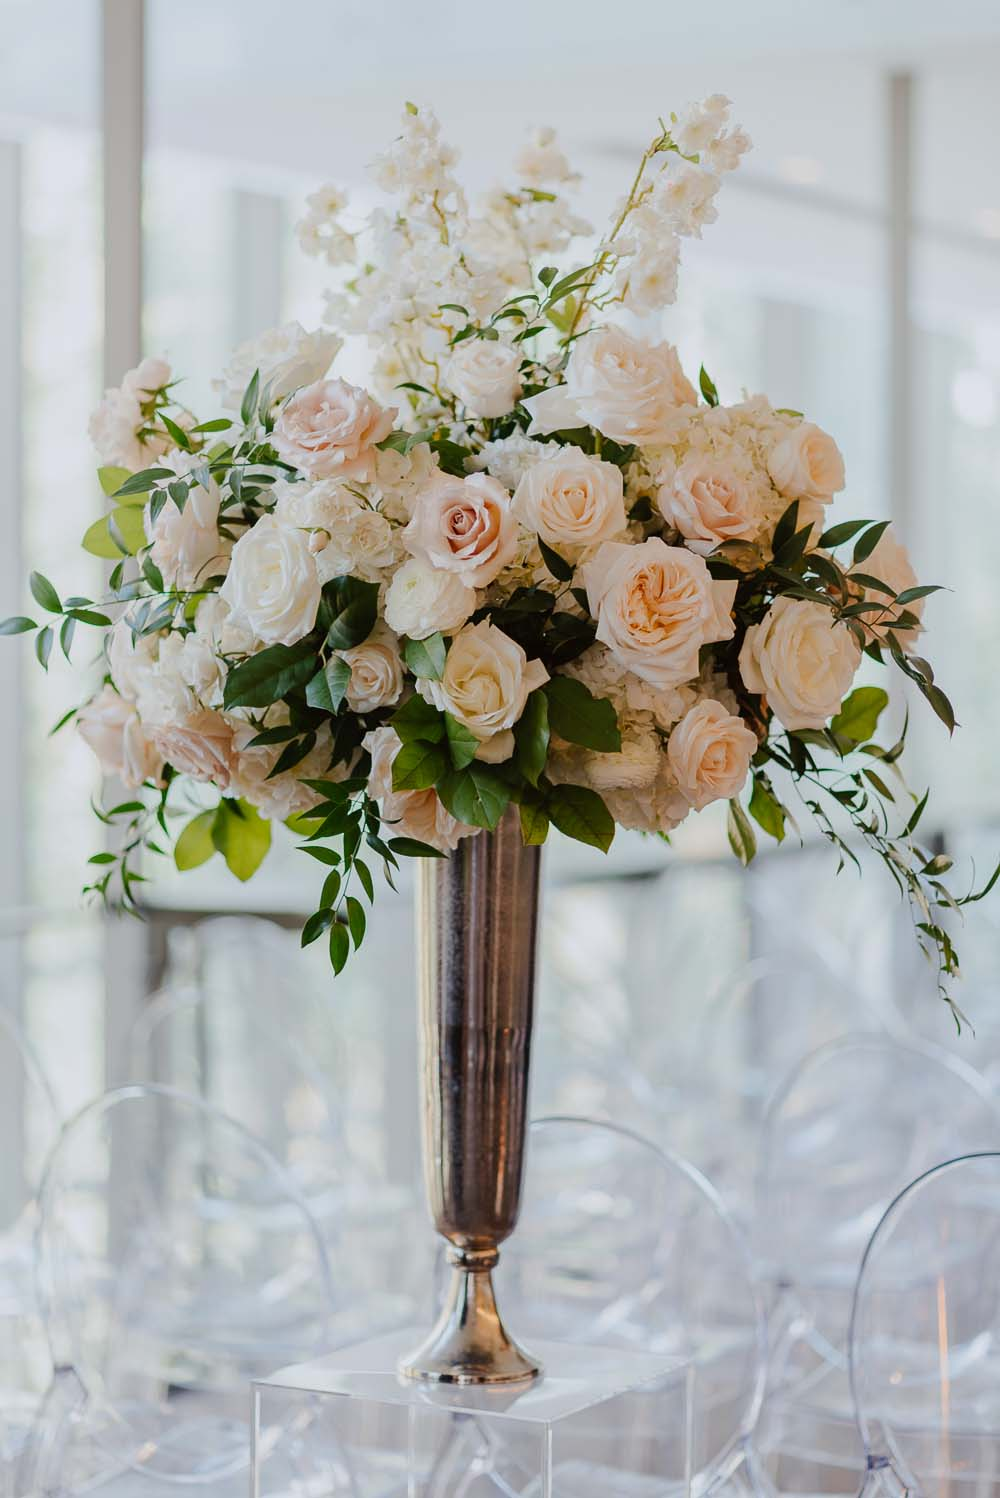 An Opulent Wedding At The Royal Conservatory Of Music - flowers